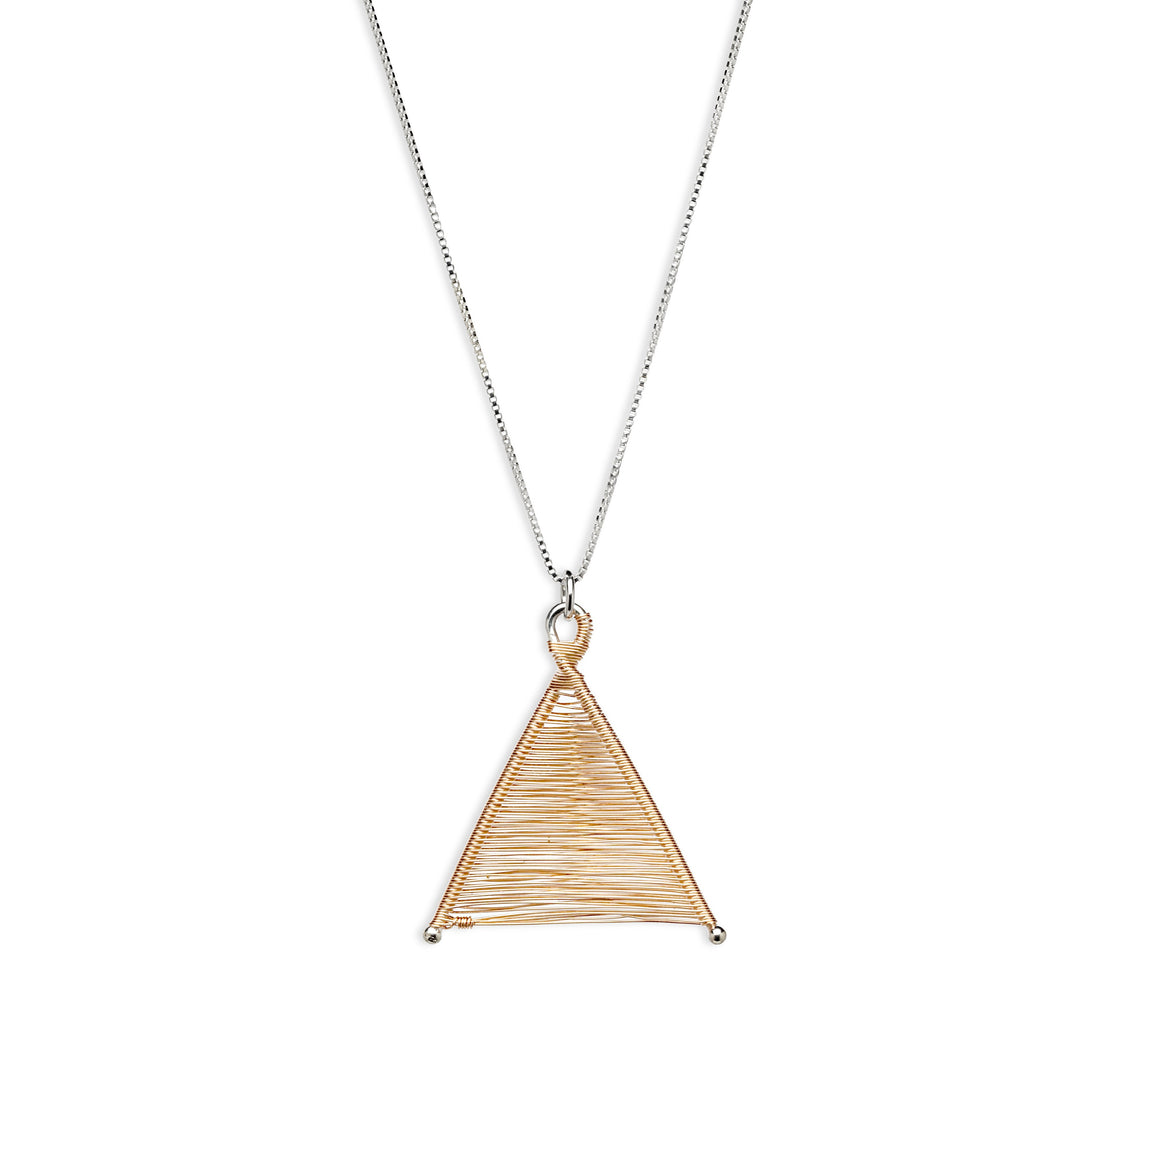 Wishbone Woven 14k Rose Gold Fill Pendant and Silver Necklace by Original Sin Jewelry in Tucson Arizona Mixed Metals